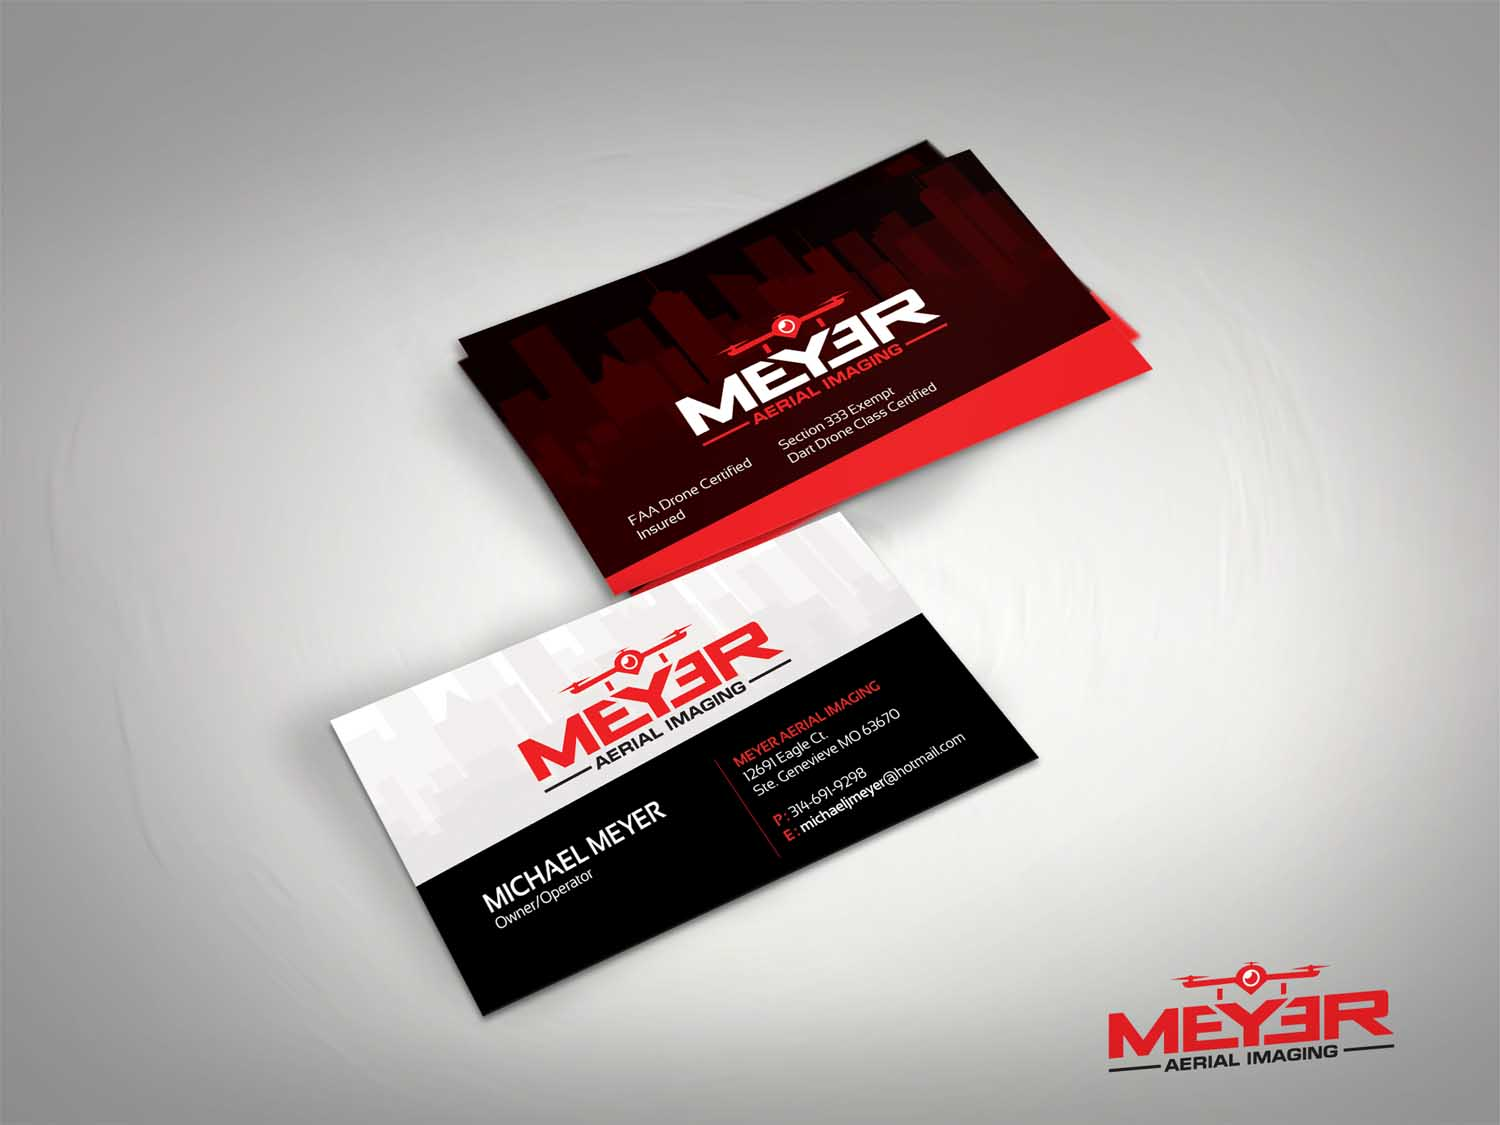 Videography business cards image collections card design and card aerial photography business cards images card design and card template serious modern business card design for reheart Choice Image